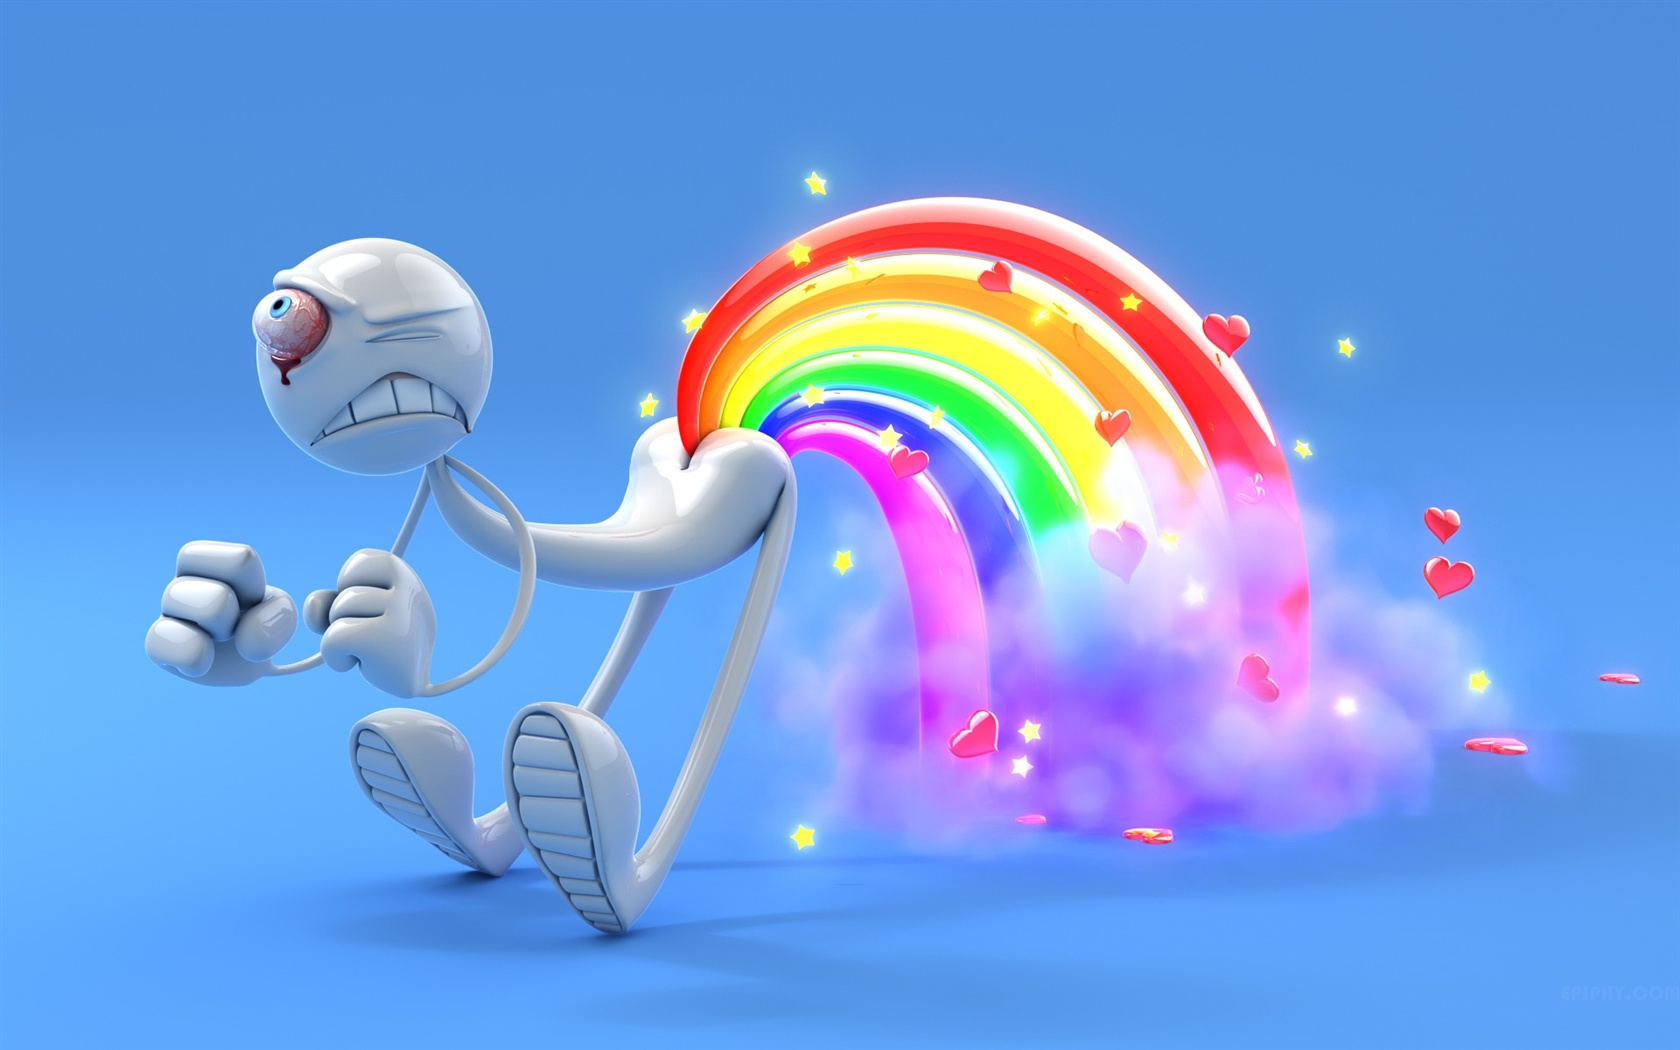 3D one-eyed man rainbow wallpaper - 1680x1050